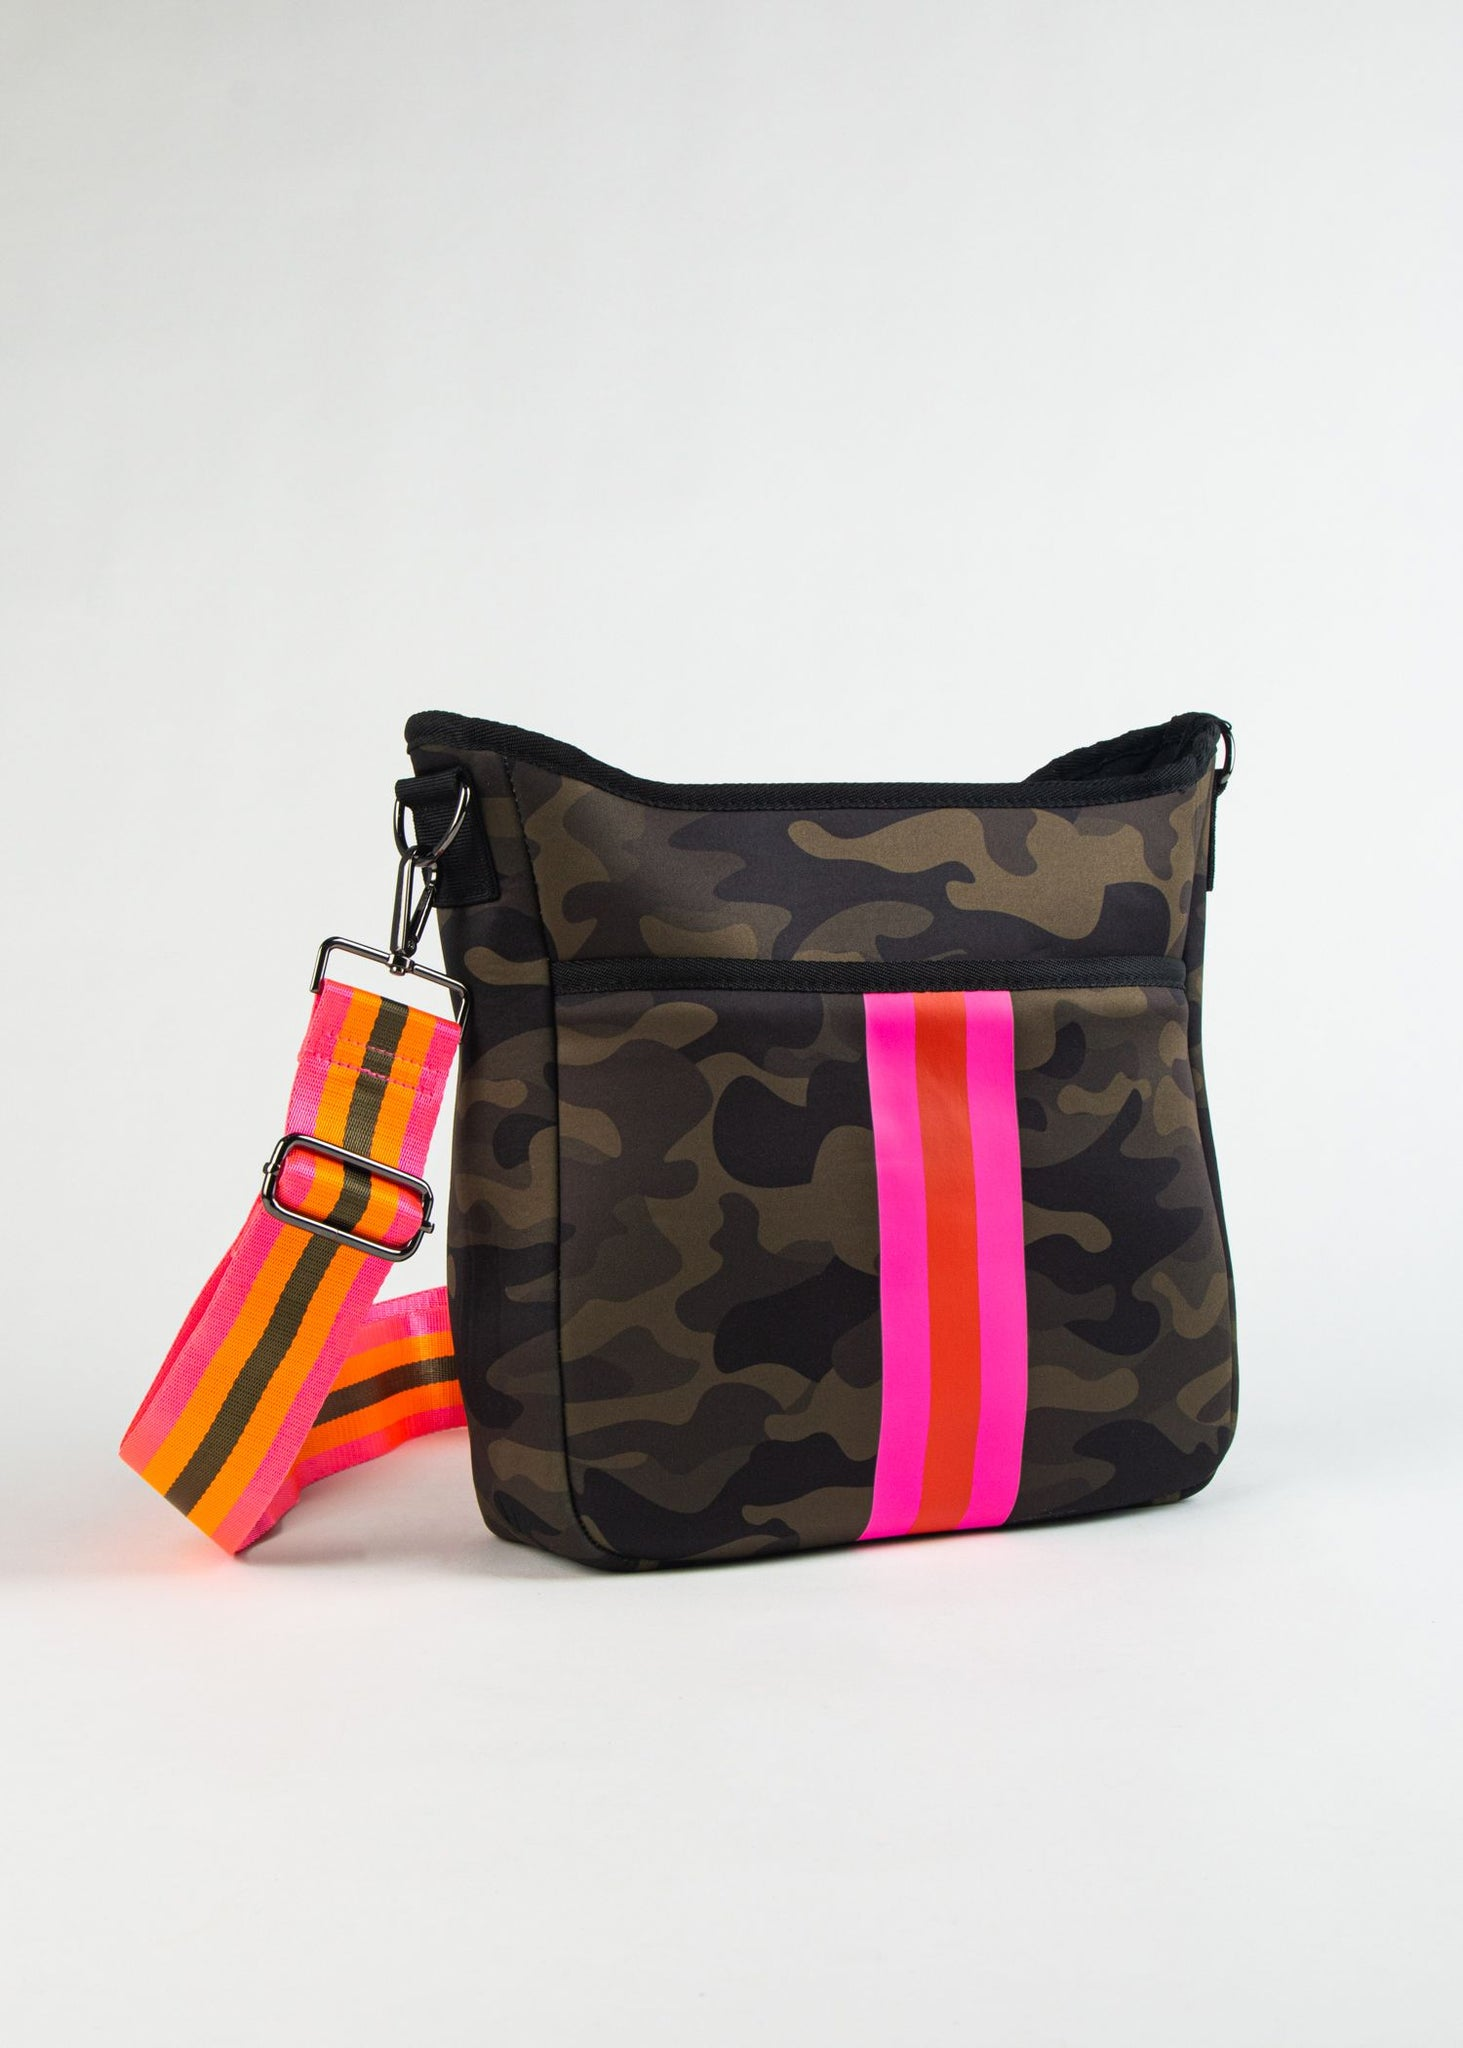 BLAKE-SHOWOFF NEOPRENE CROSSBODY